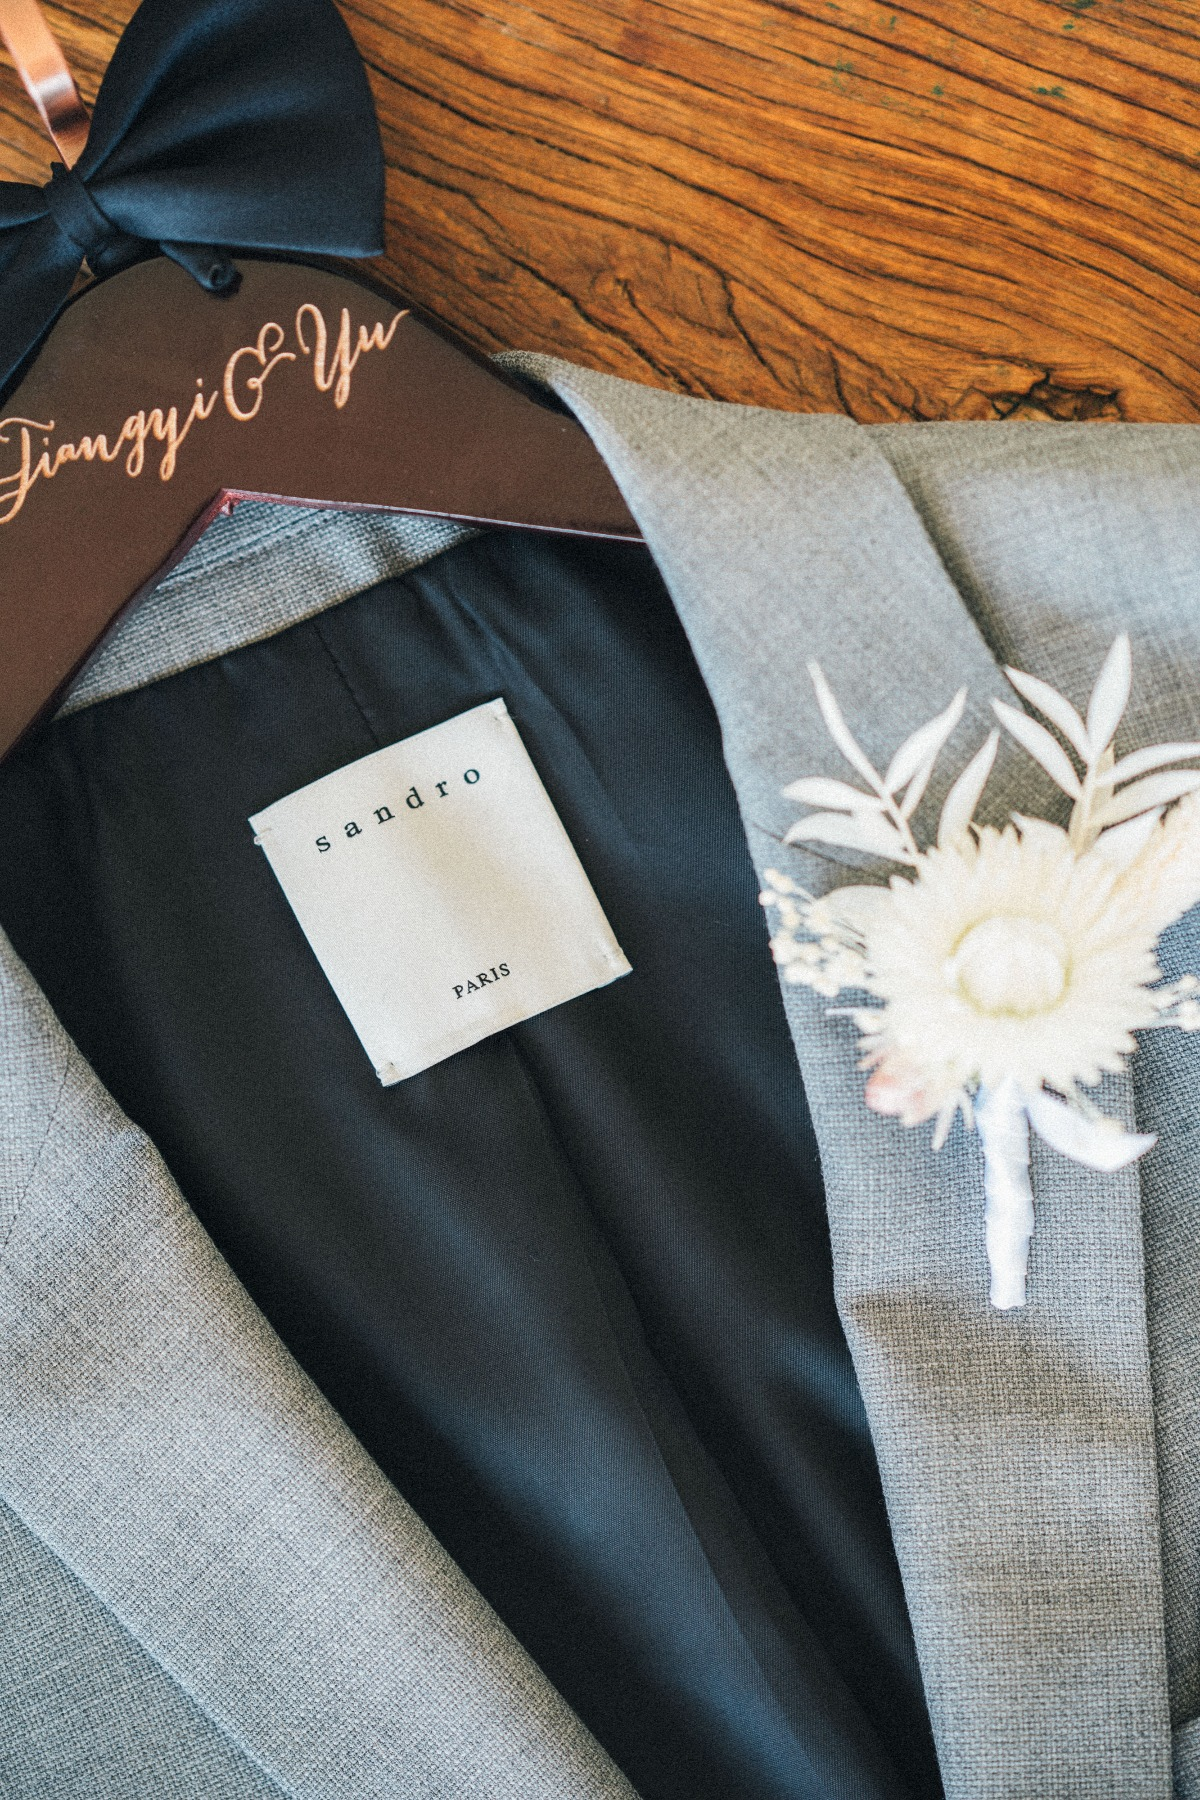 Sandro wedding text with customized hanger